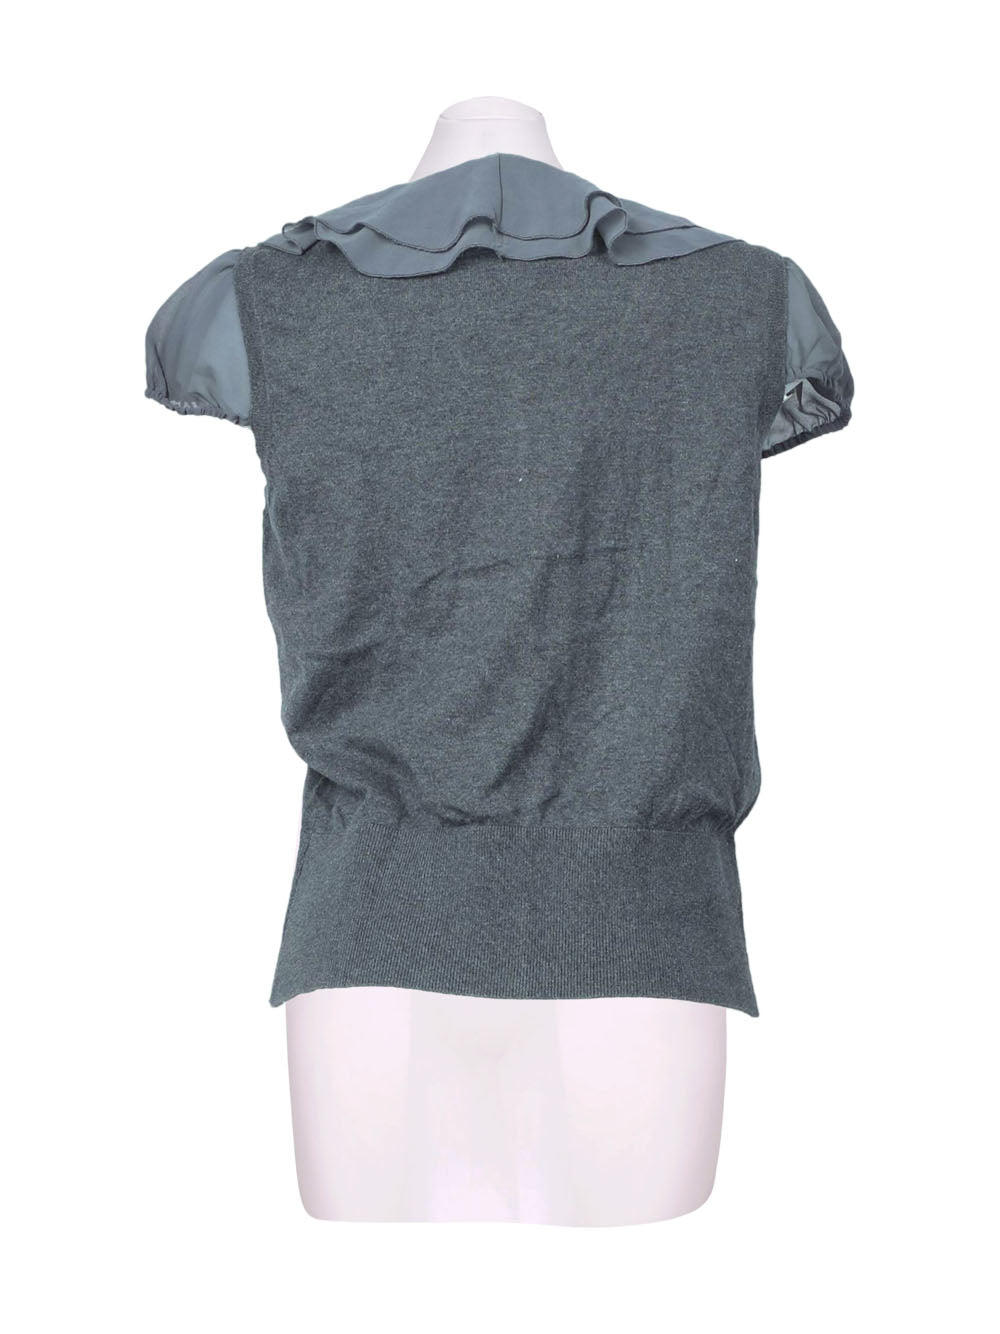 Back photo of Preloved lwie Grey Woman's shirt - size 10/M